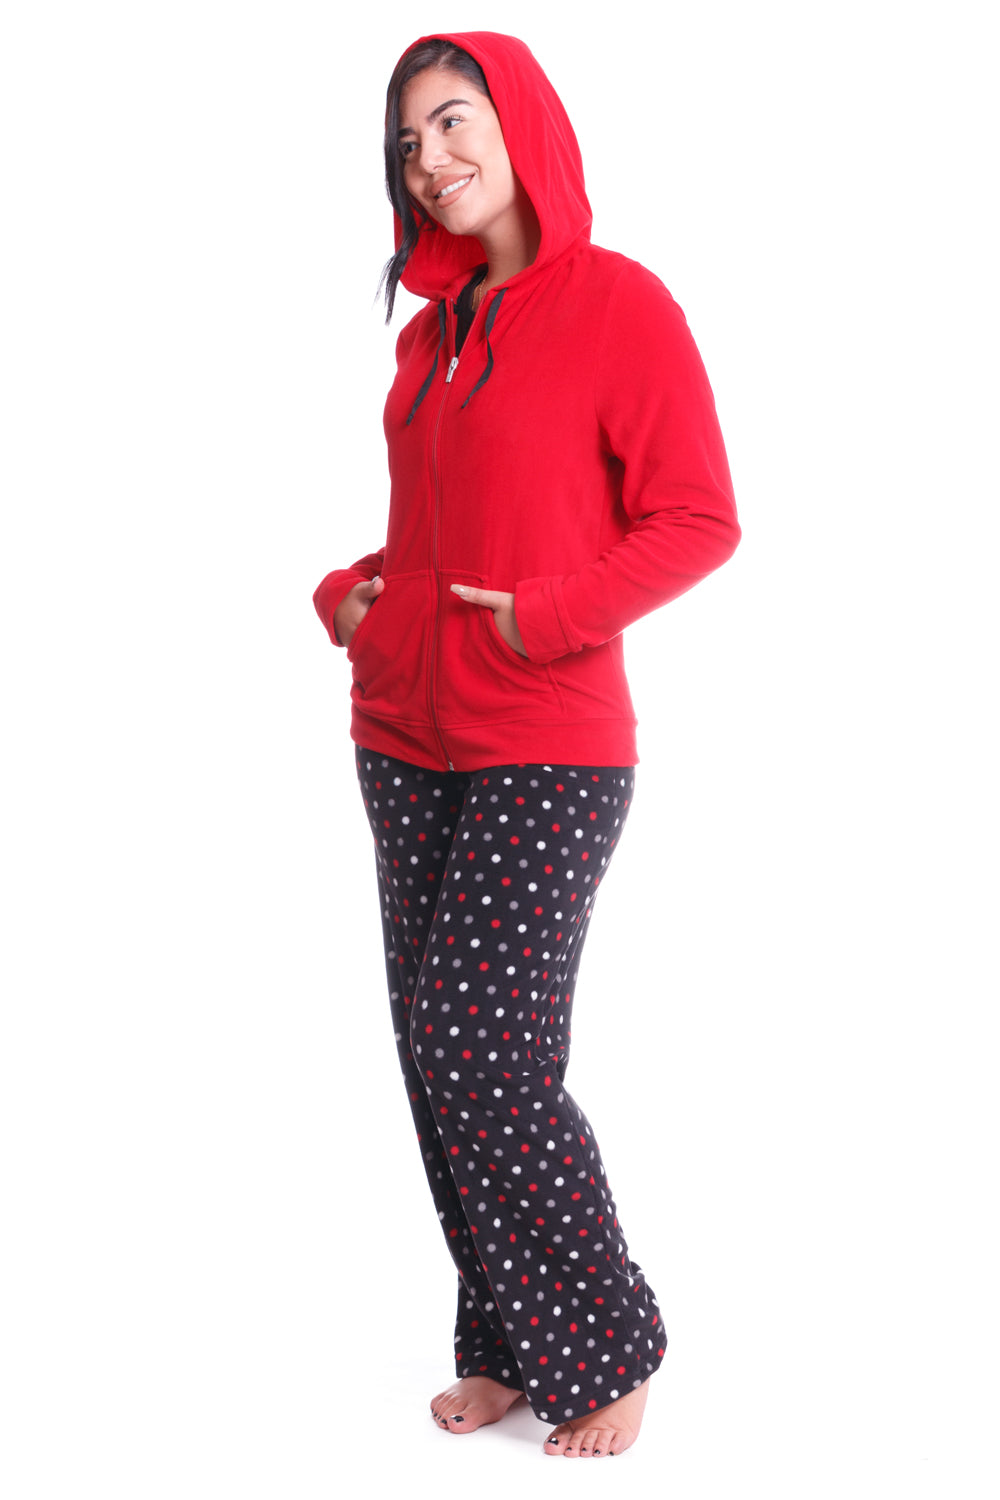 Black Polka Dot 3 Piece Pajama Set - XL